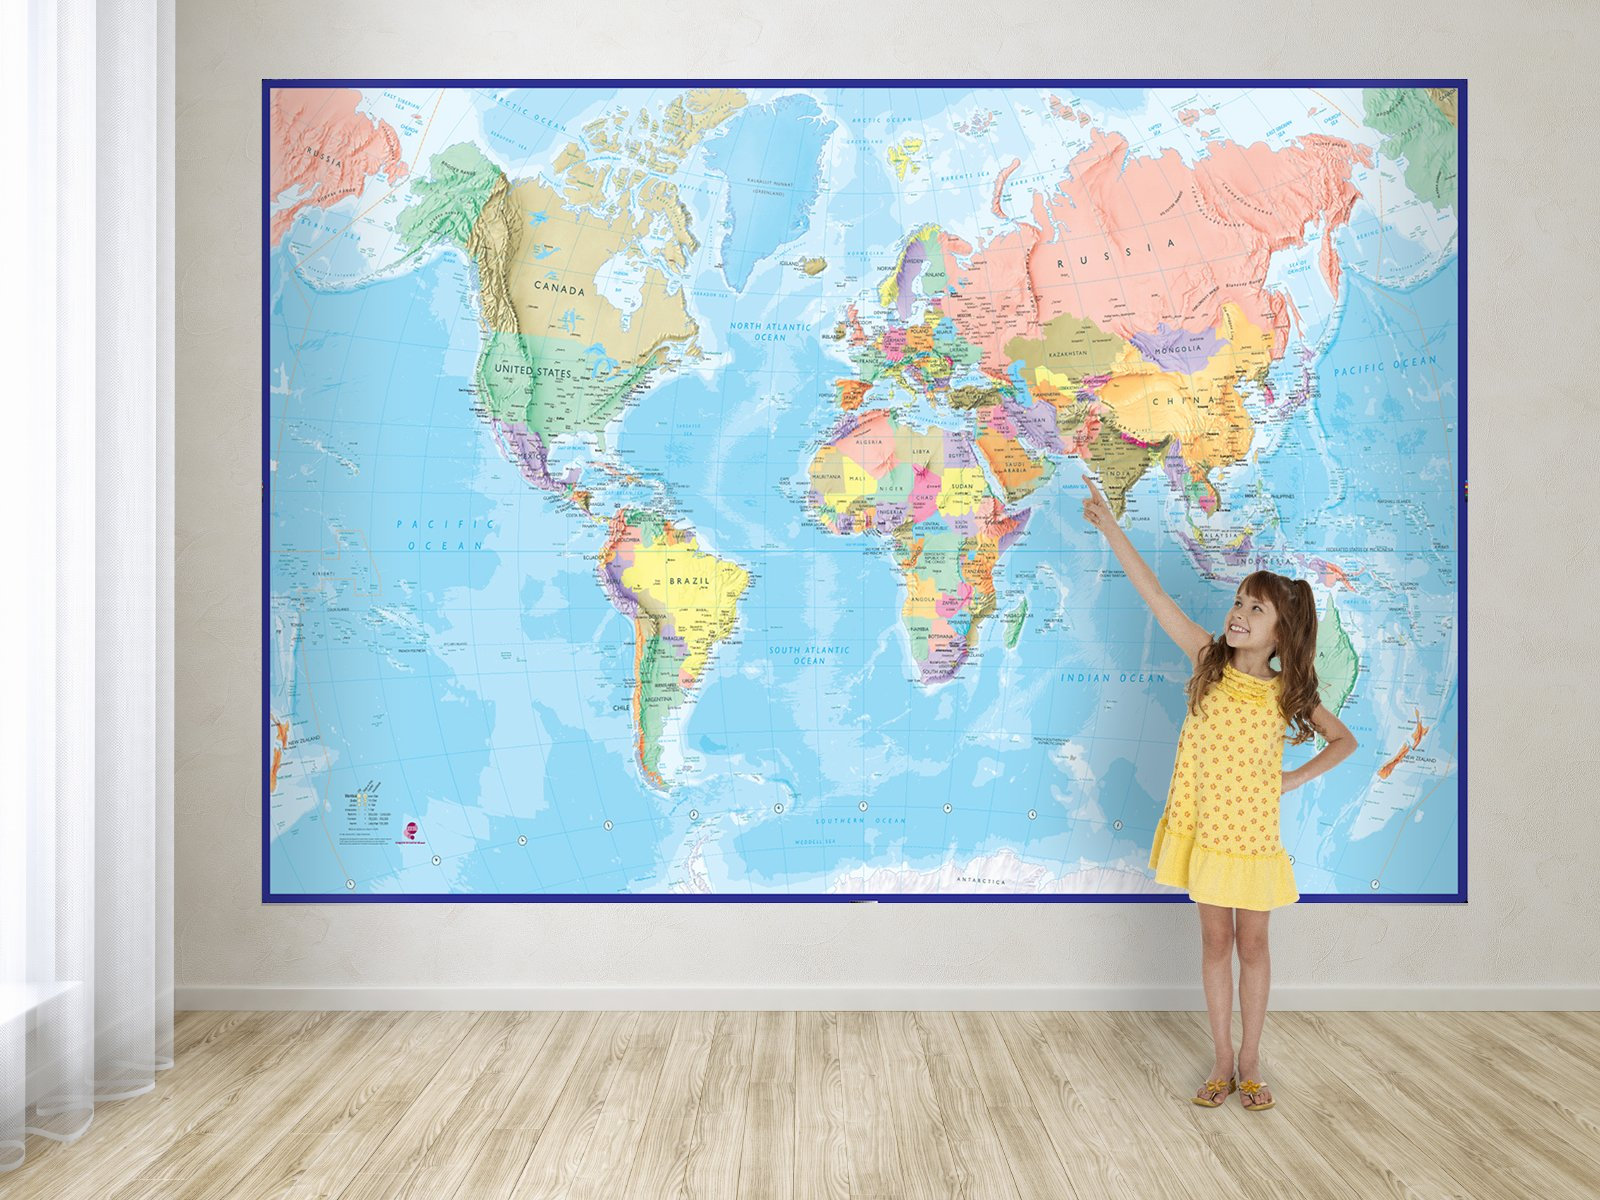 Make Your Playroom Magical With A World Map Mural